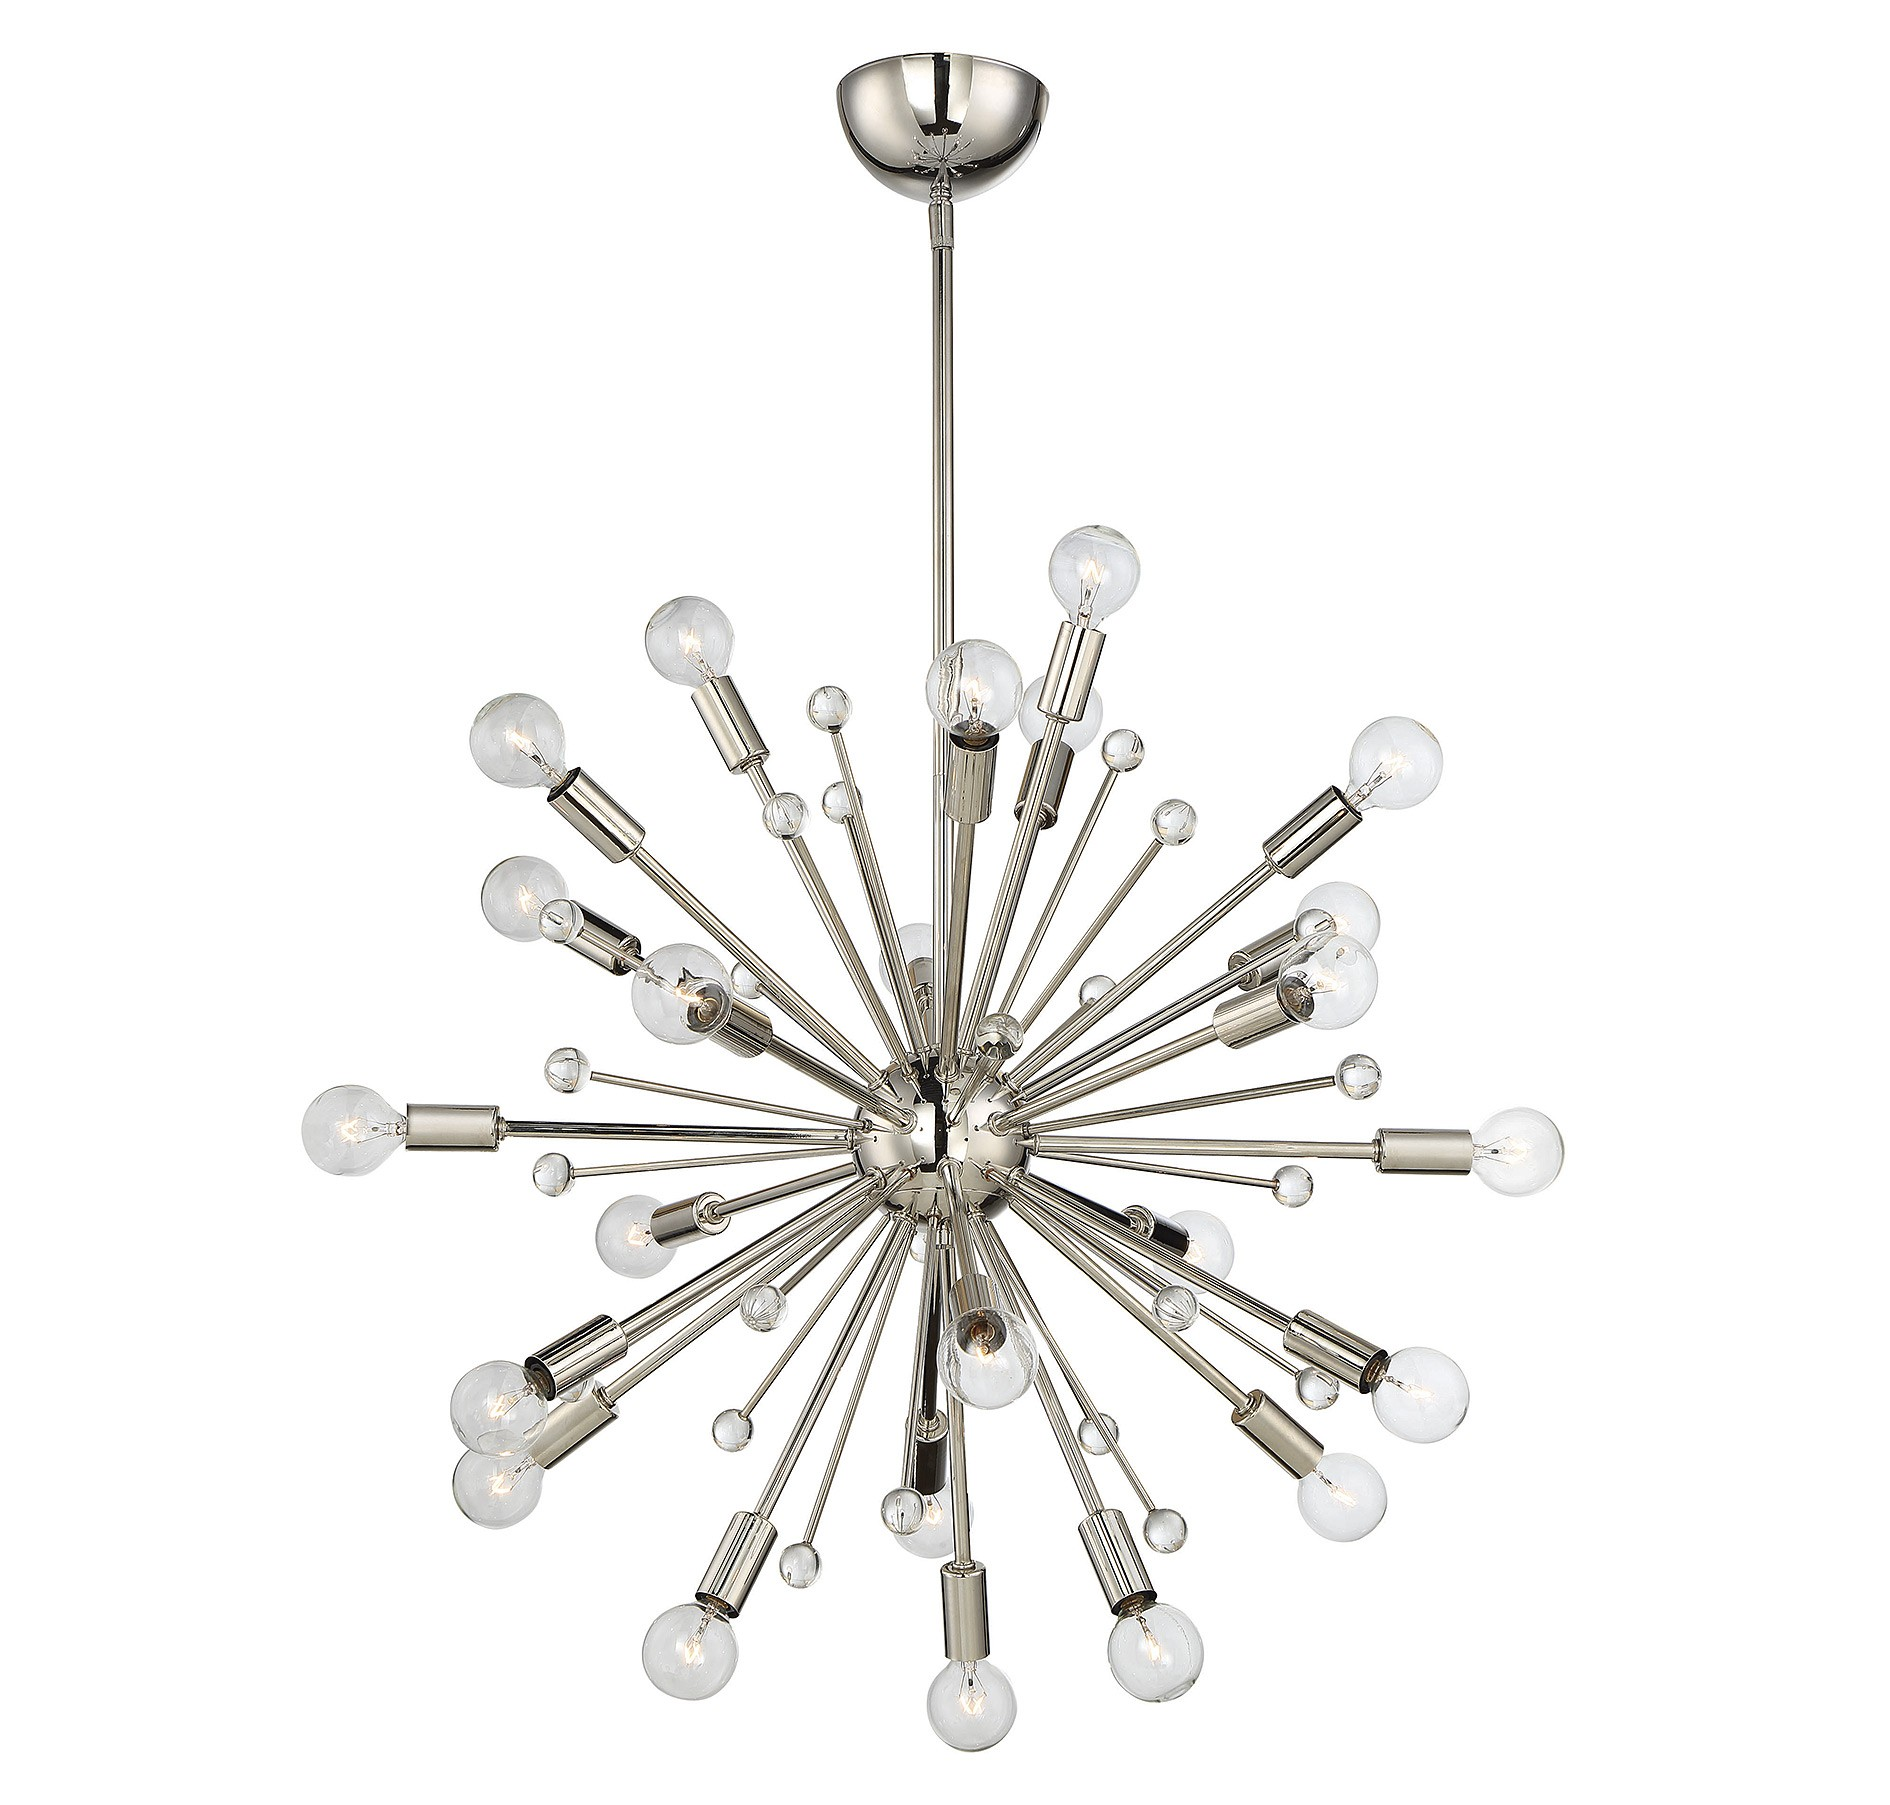 Chandelier by savoy house 7 6099 24 109 galea chandelier by savoy house 7 6099 24 109 arubaitofo Gallery